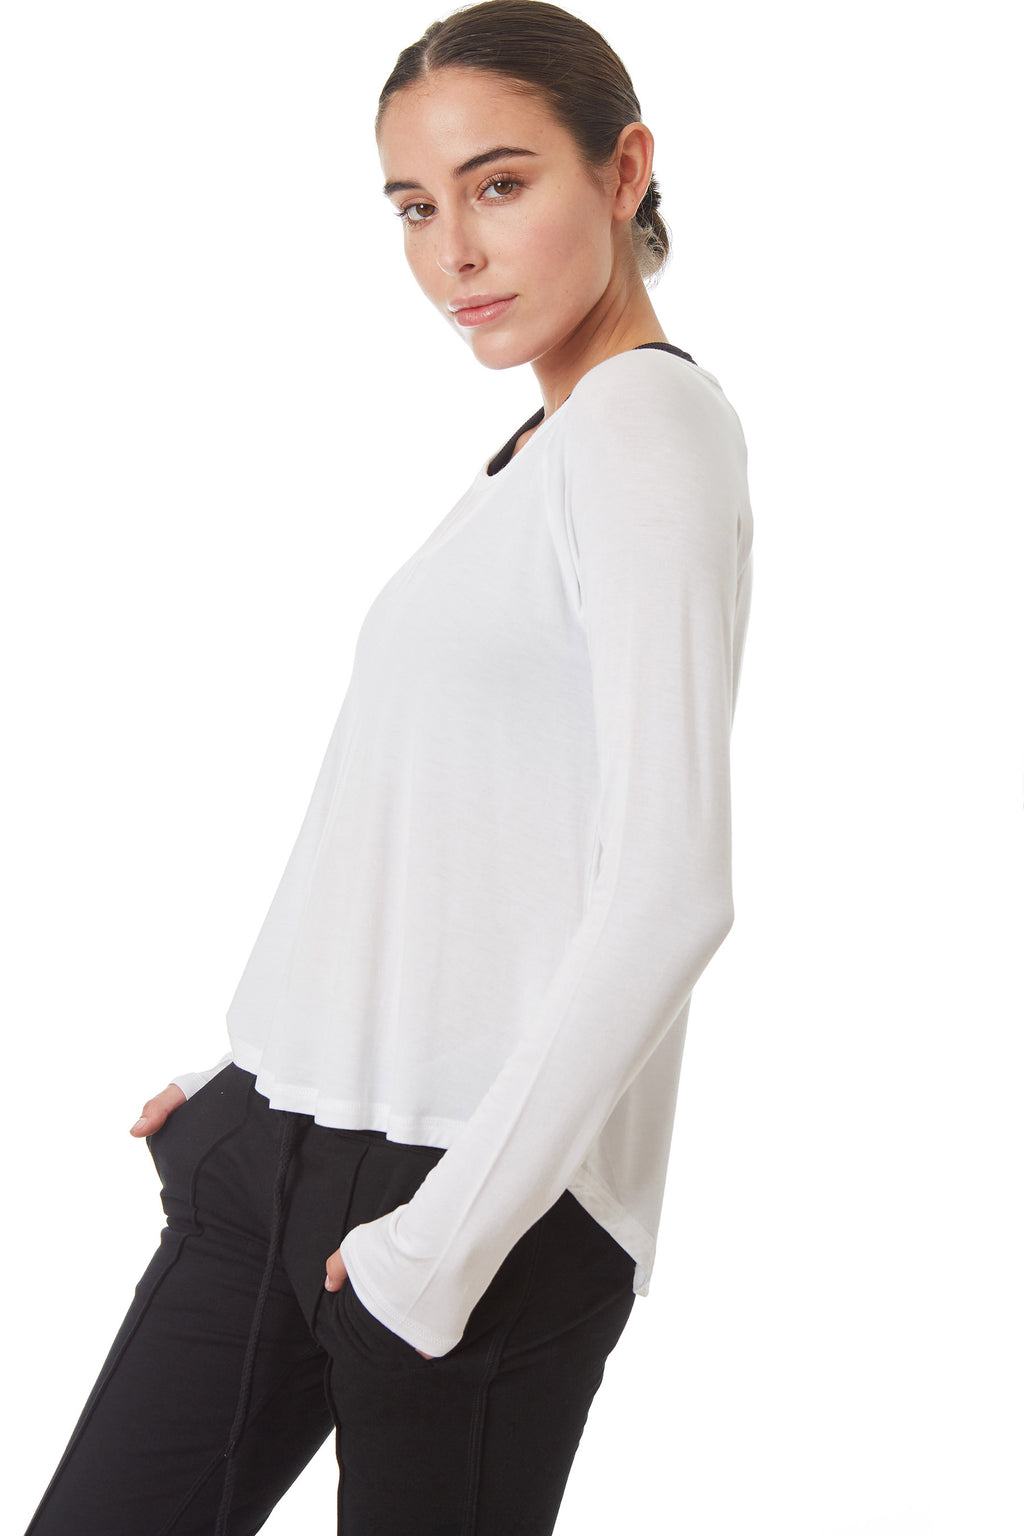 Gottex Studio Brooklyn Long Sleeve Top - Gottex Studio